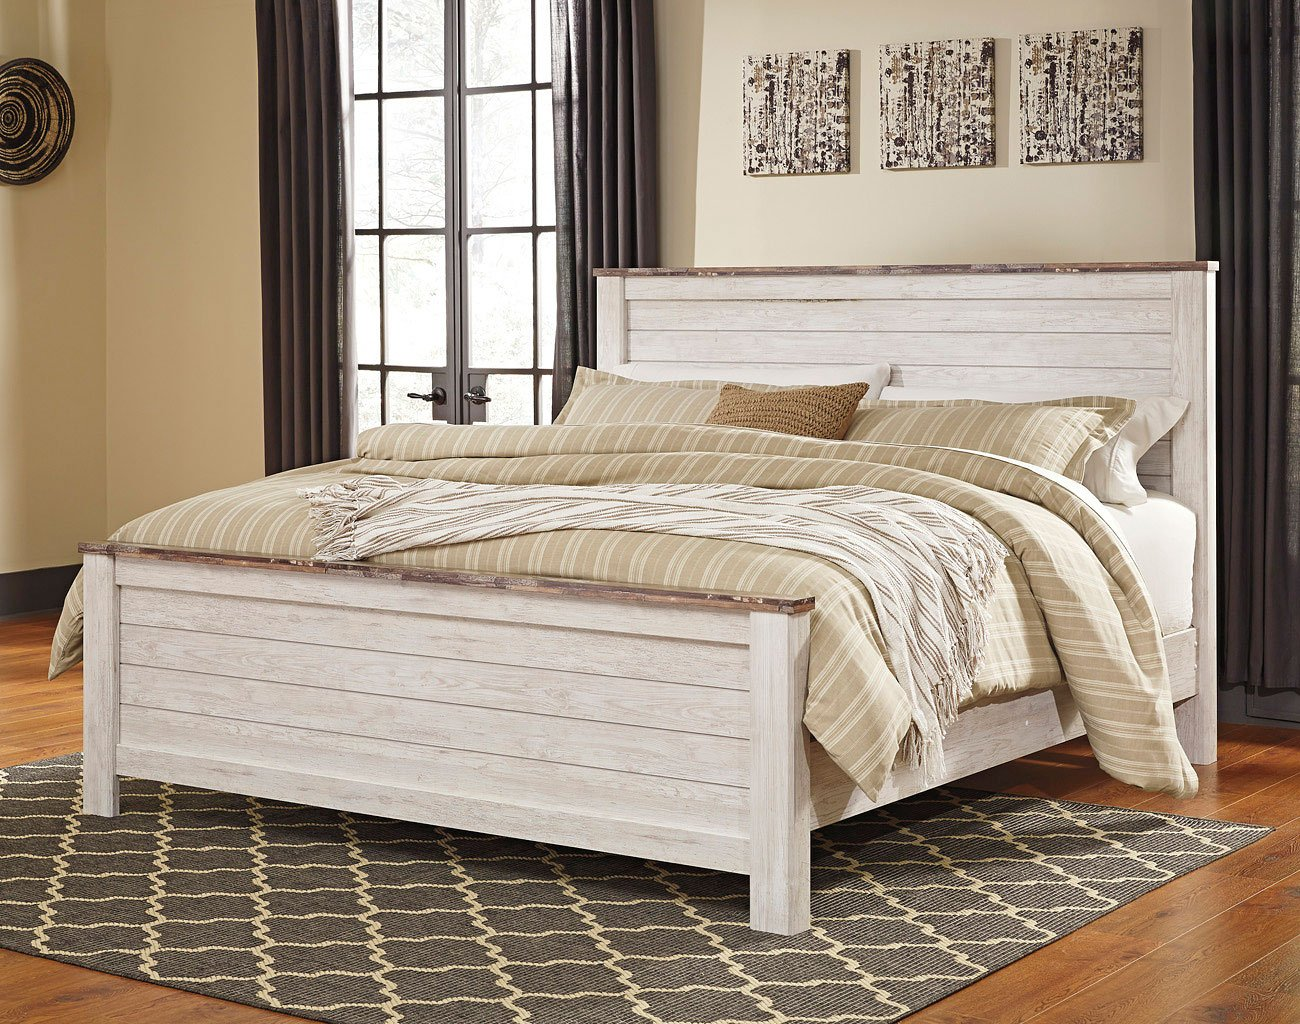 Willowton panel bedroom set by signature design by ashley - Ashley bedroom furniture reviews ...